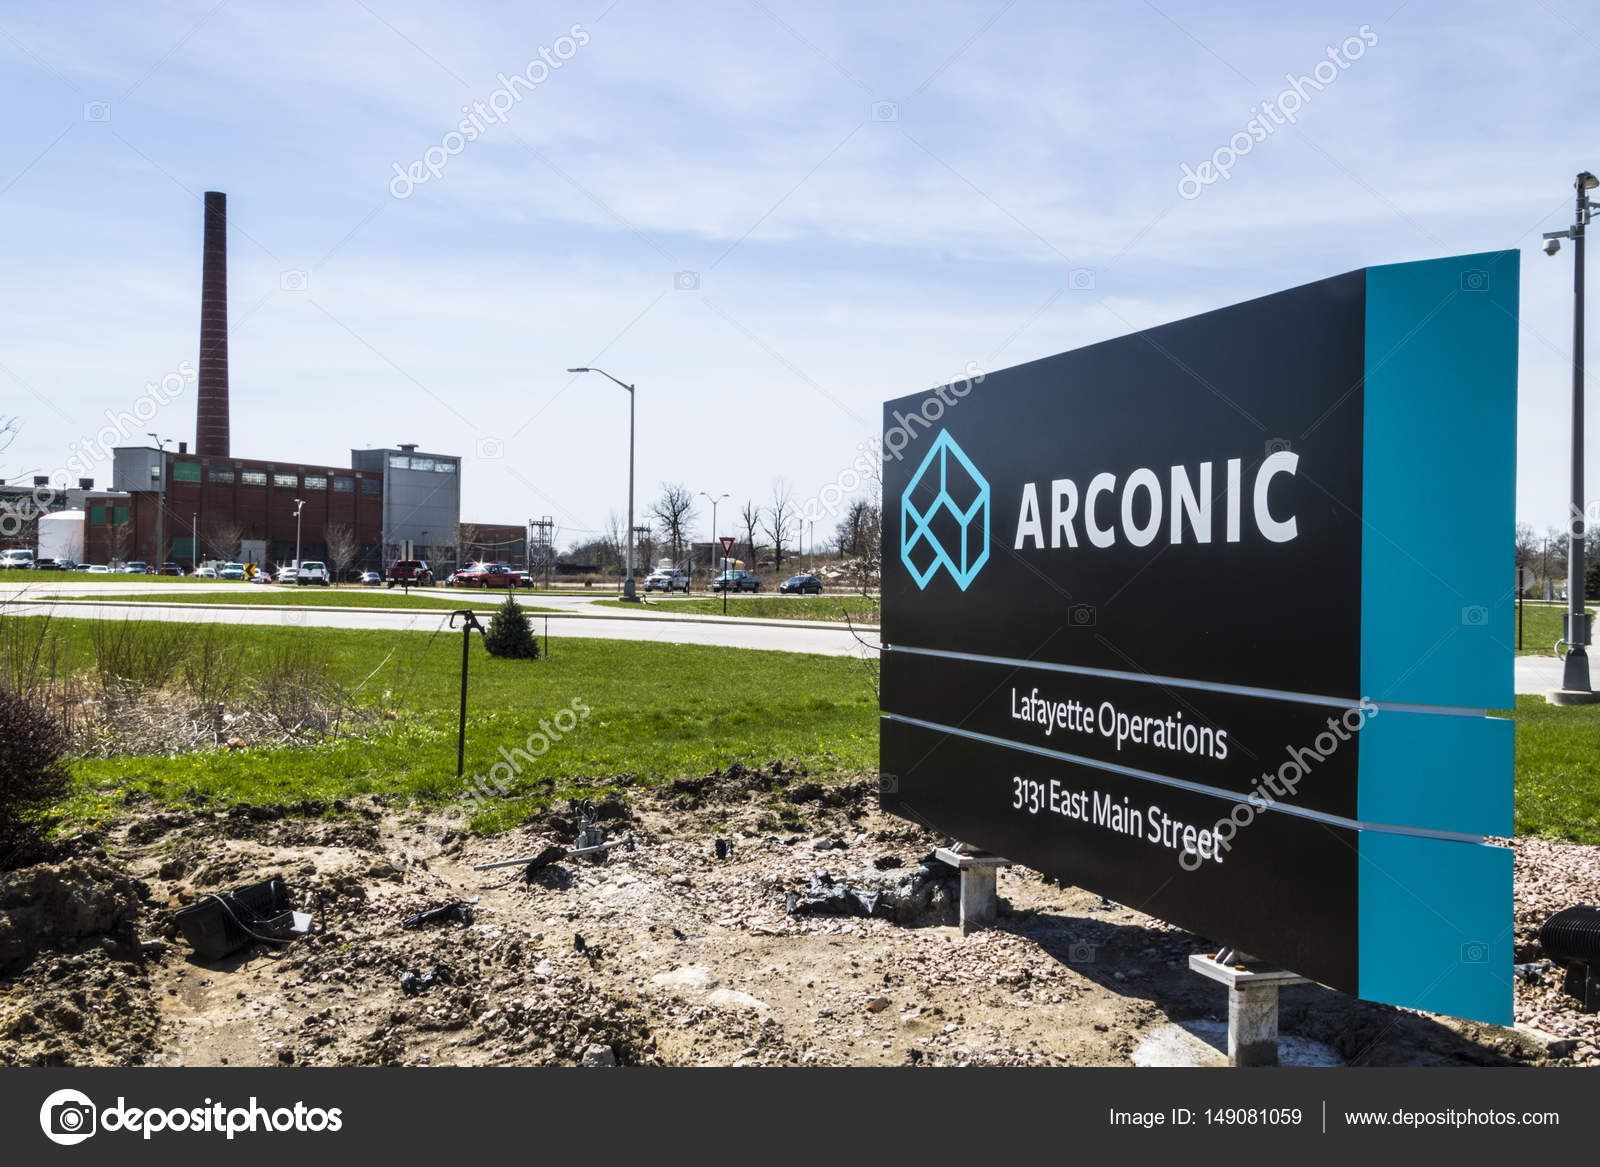 Lafayette - Circa April 2017: Arconic Forging and Extrusion